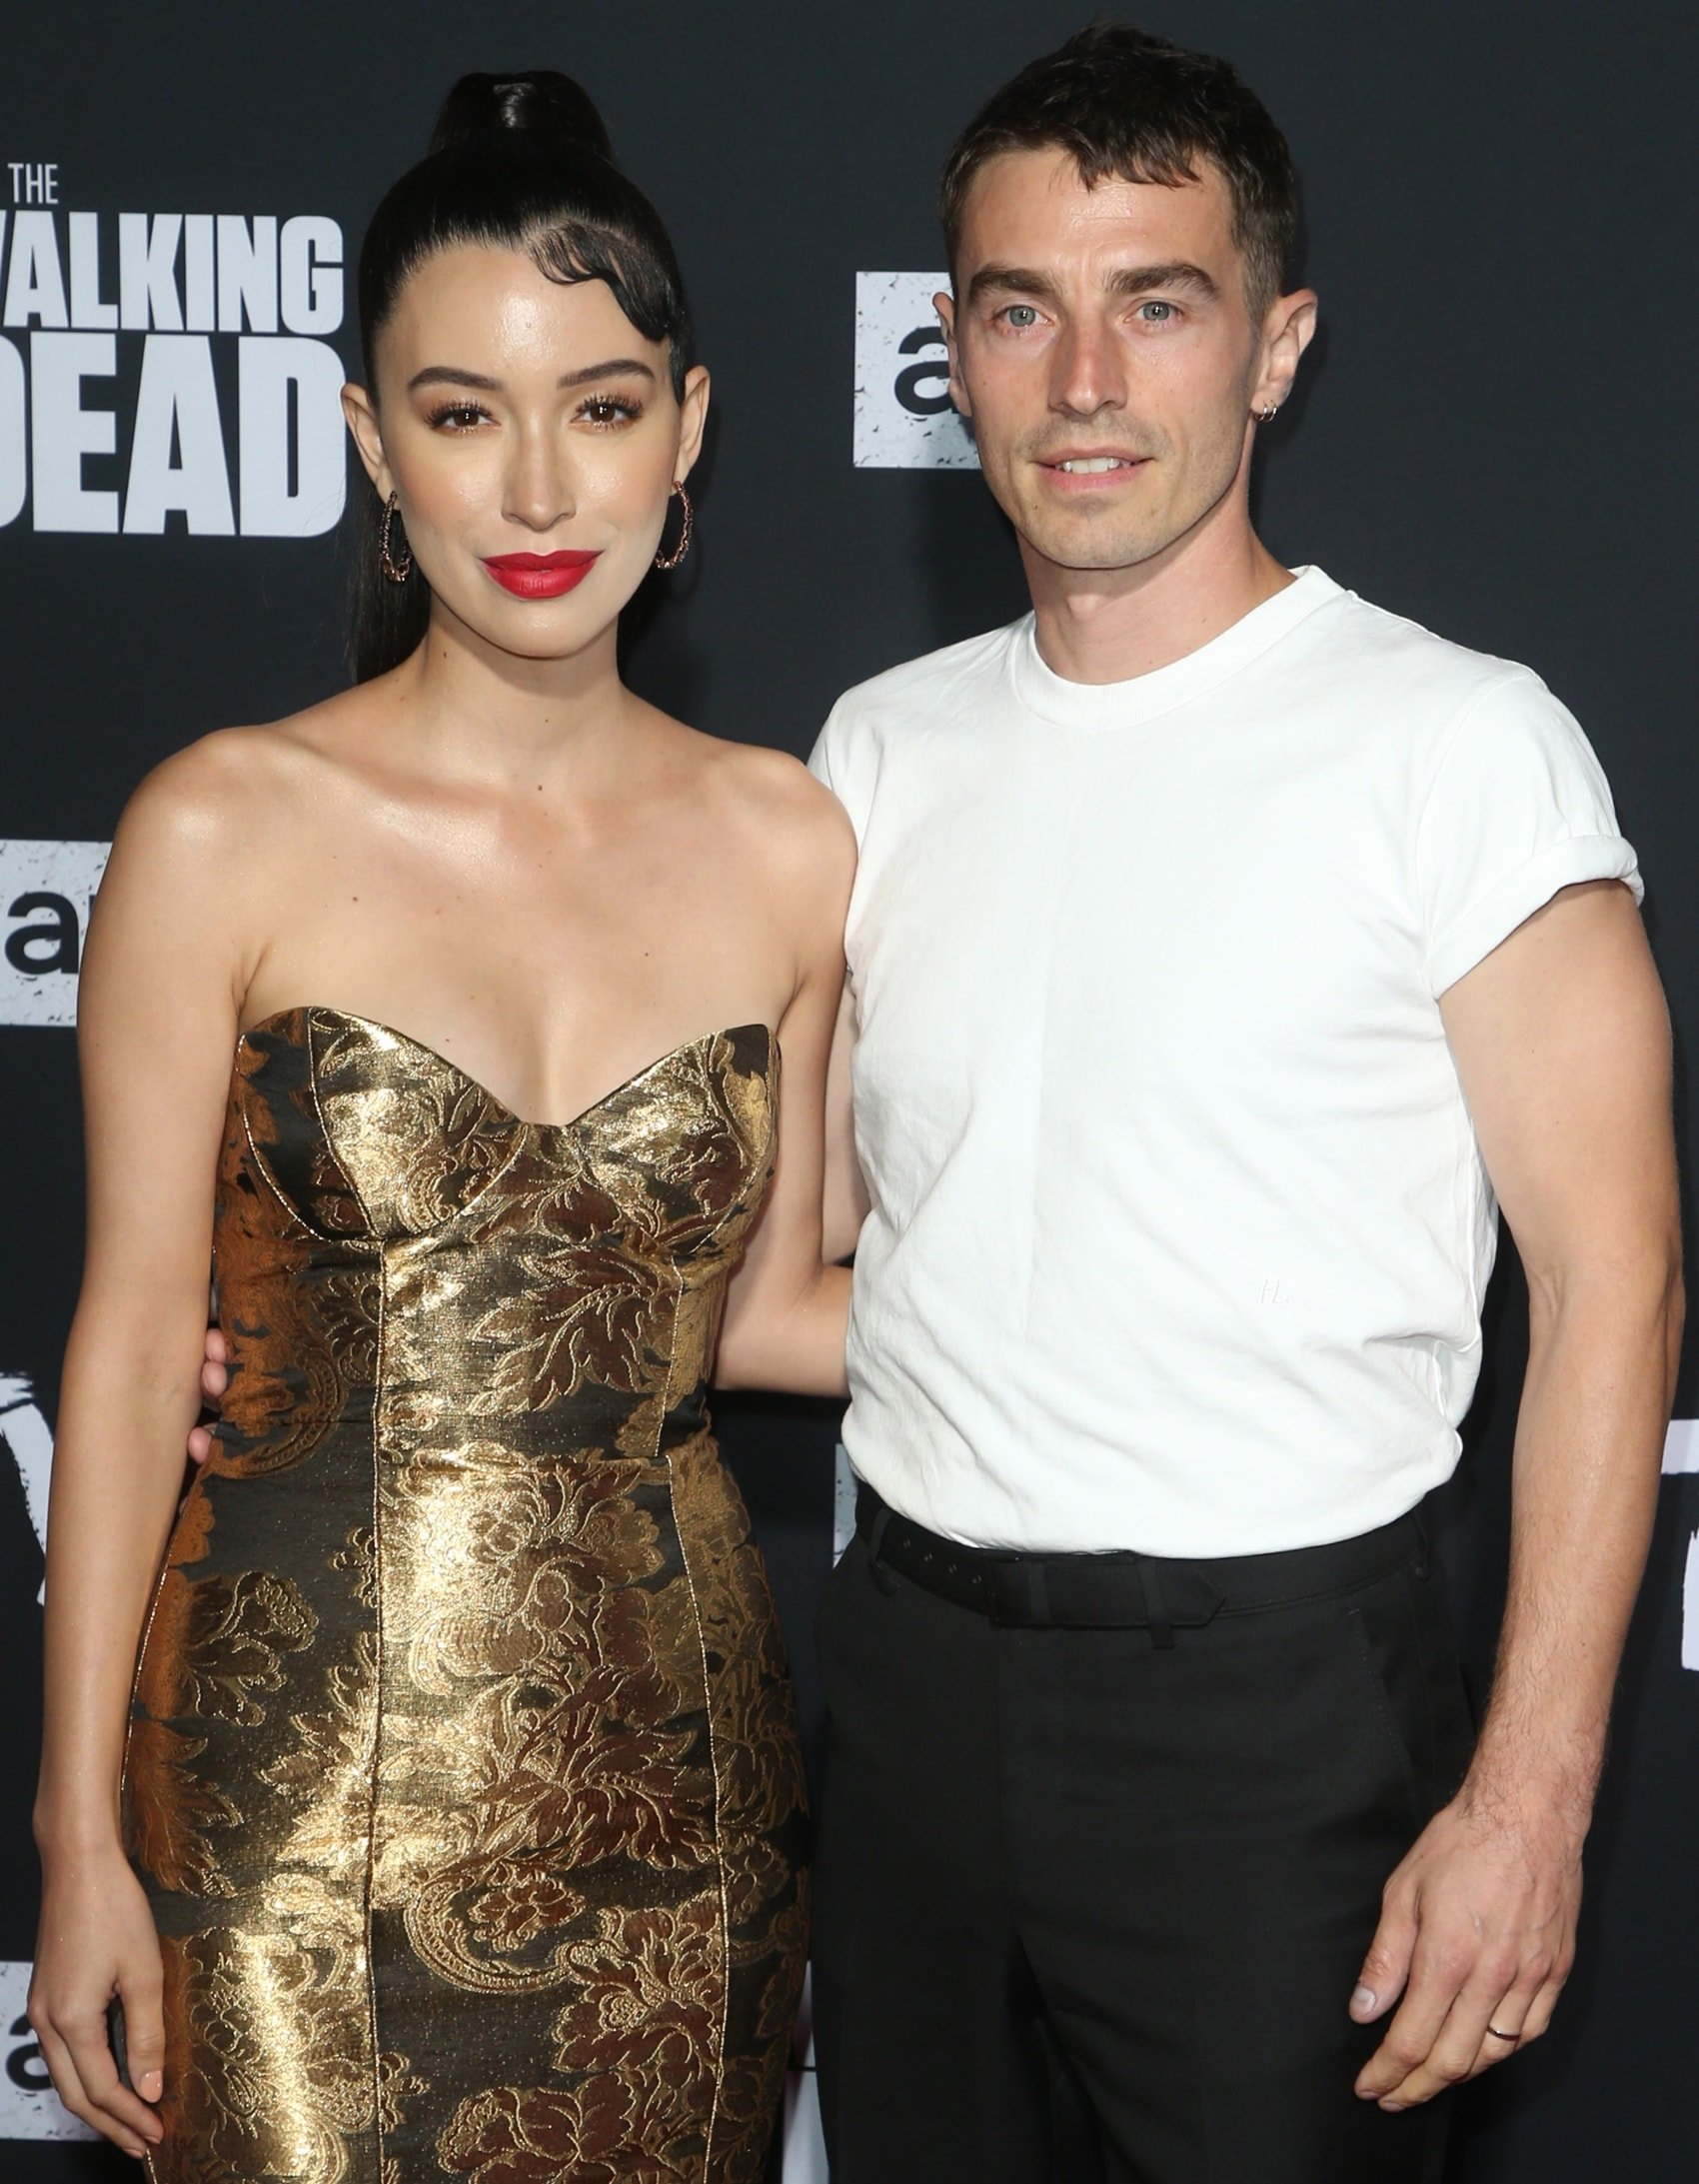 Christian Serratos had a daughter named Wolfgang in 2017 with her husband, New Politics singer David Boyd